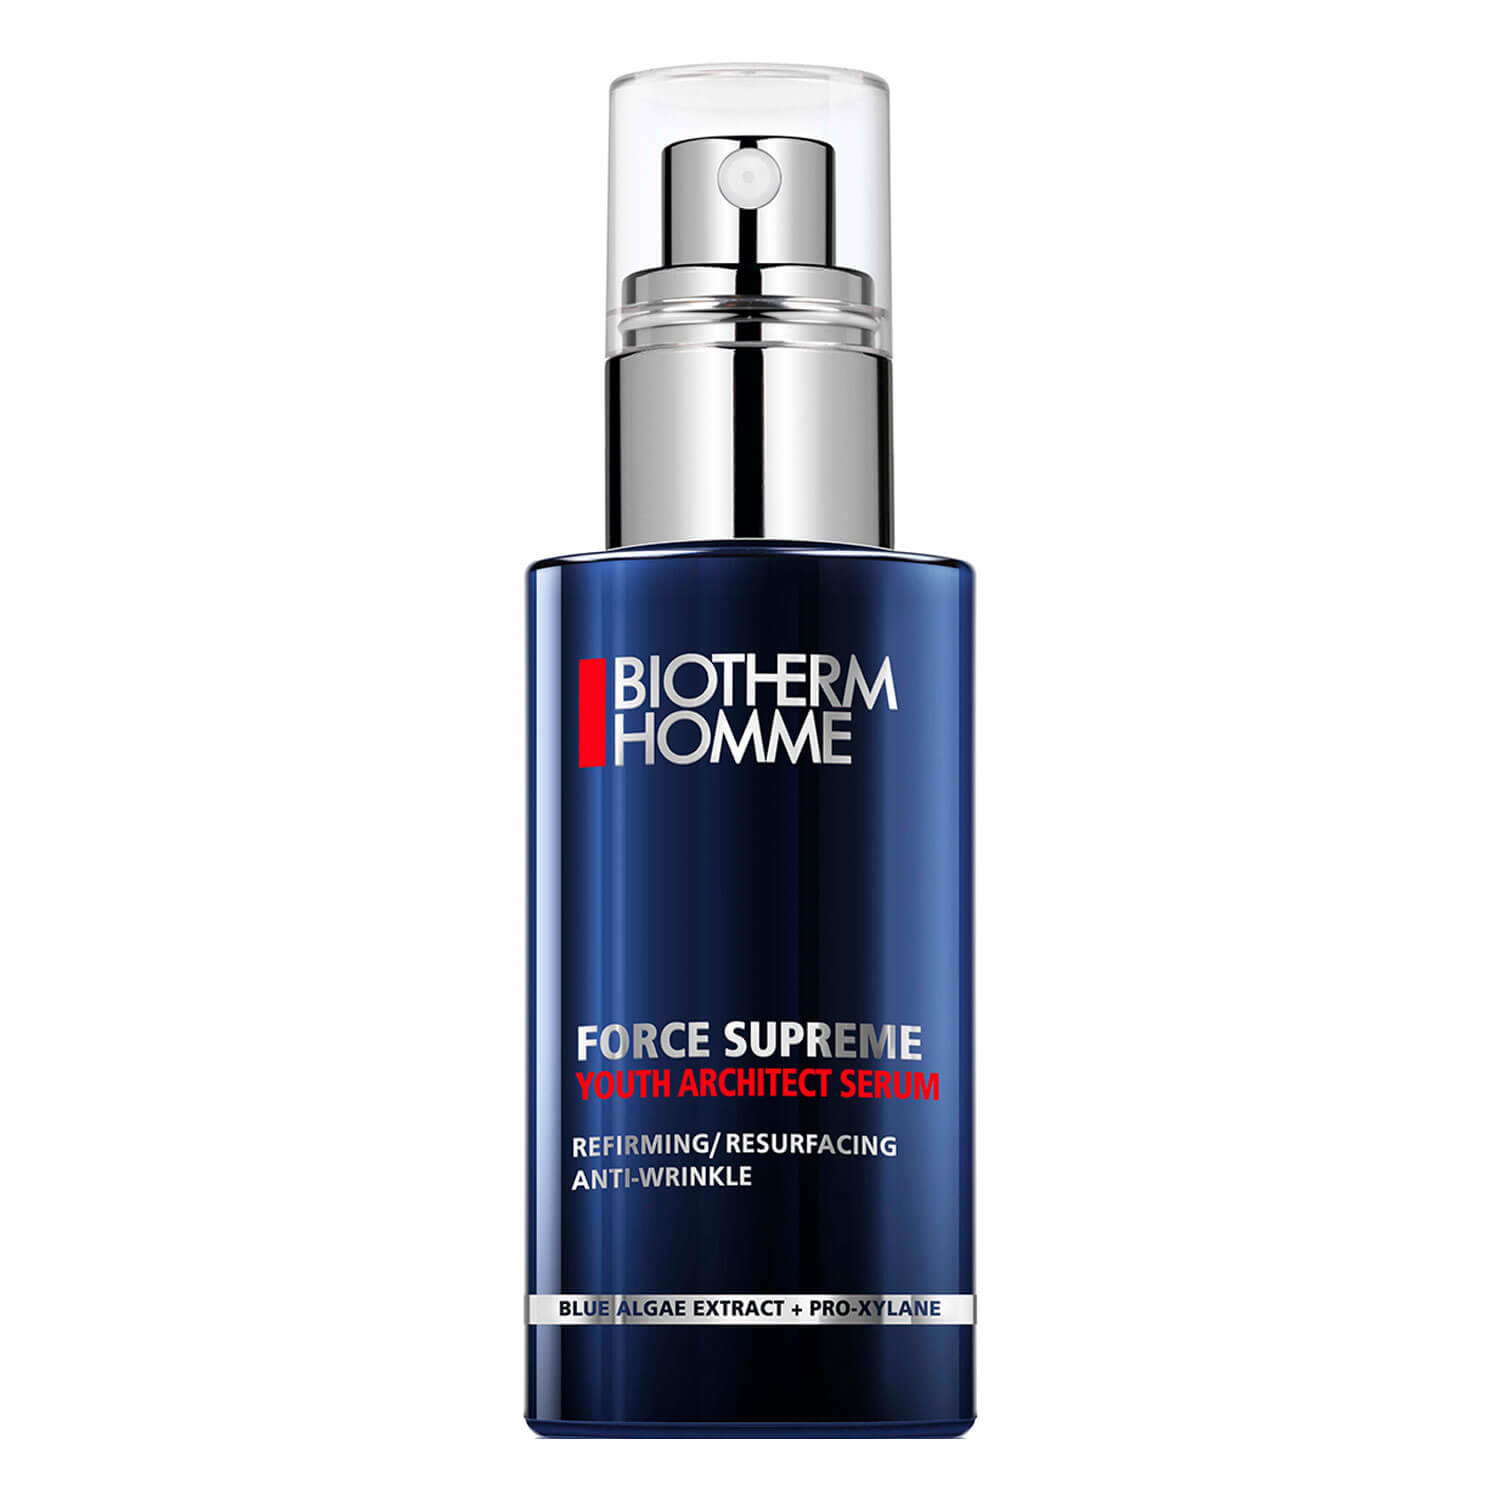 Biotherm Homme - Force Supreme Youth Arquitect Serum